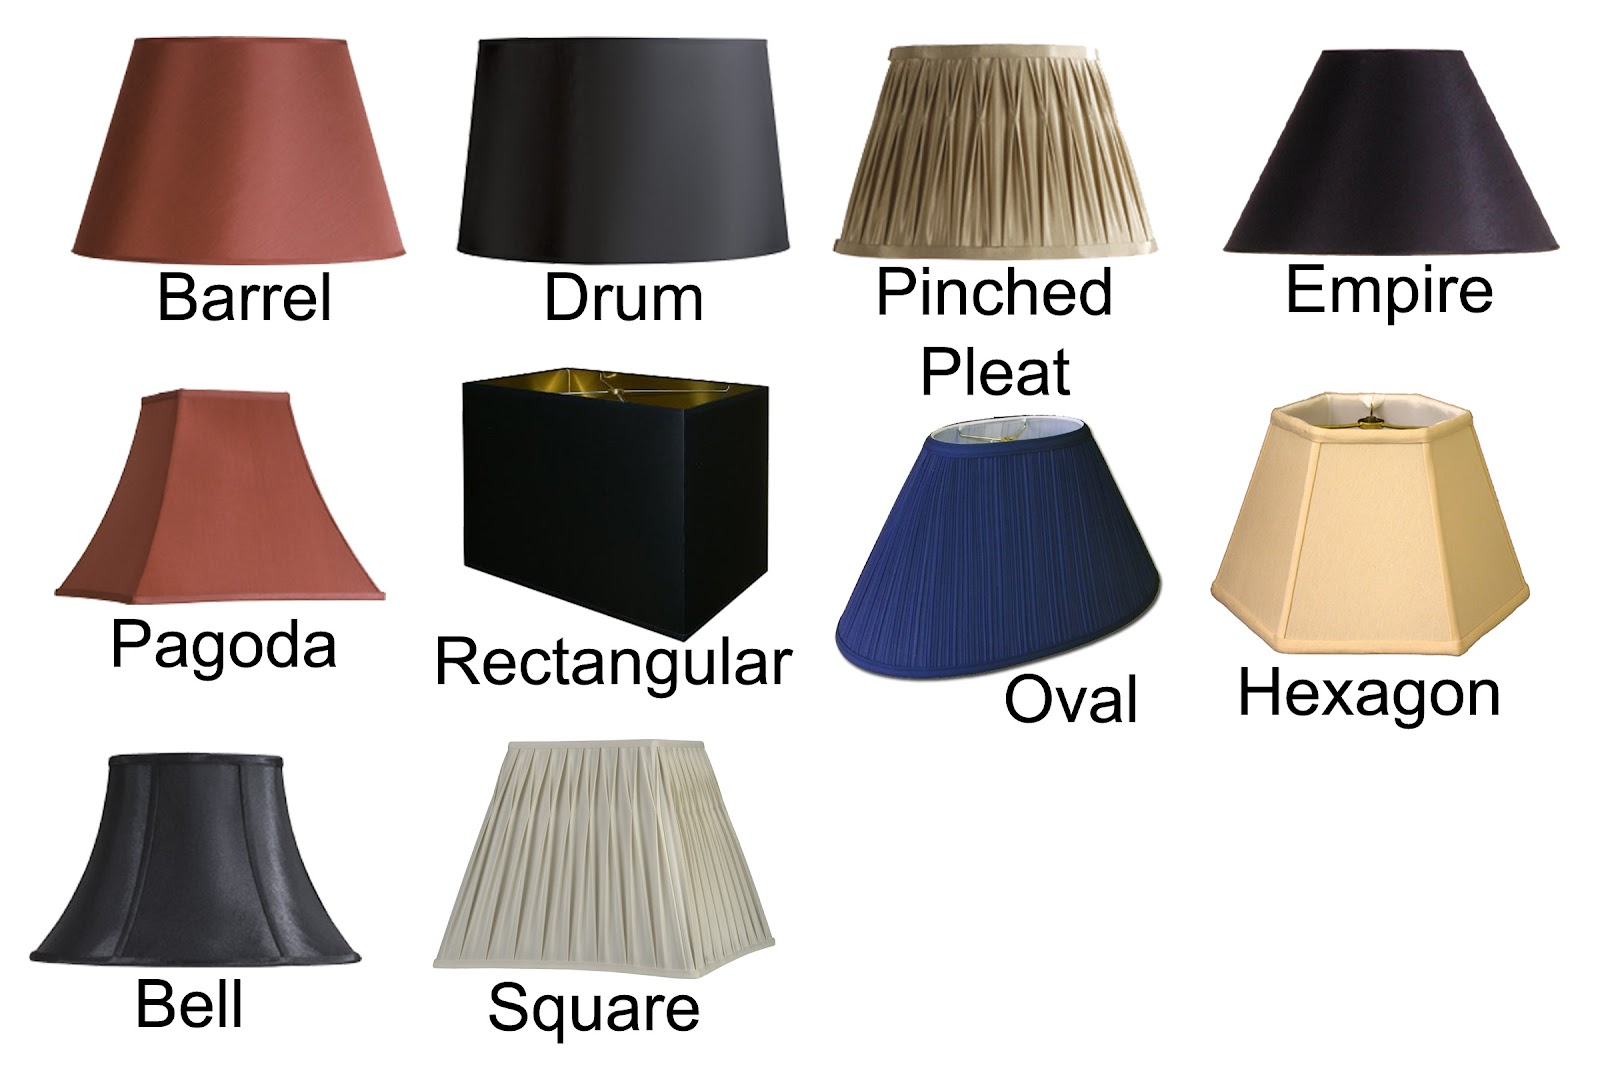 As the curtain hangs how to pick the right lamp shade second select the shades bottom diameter the best way to determine the bottom diameter of the shade for your table lamp is to measure the lamp height from aloadofball Image collections